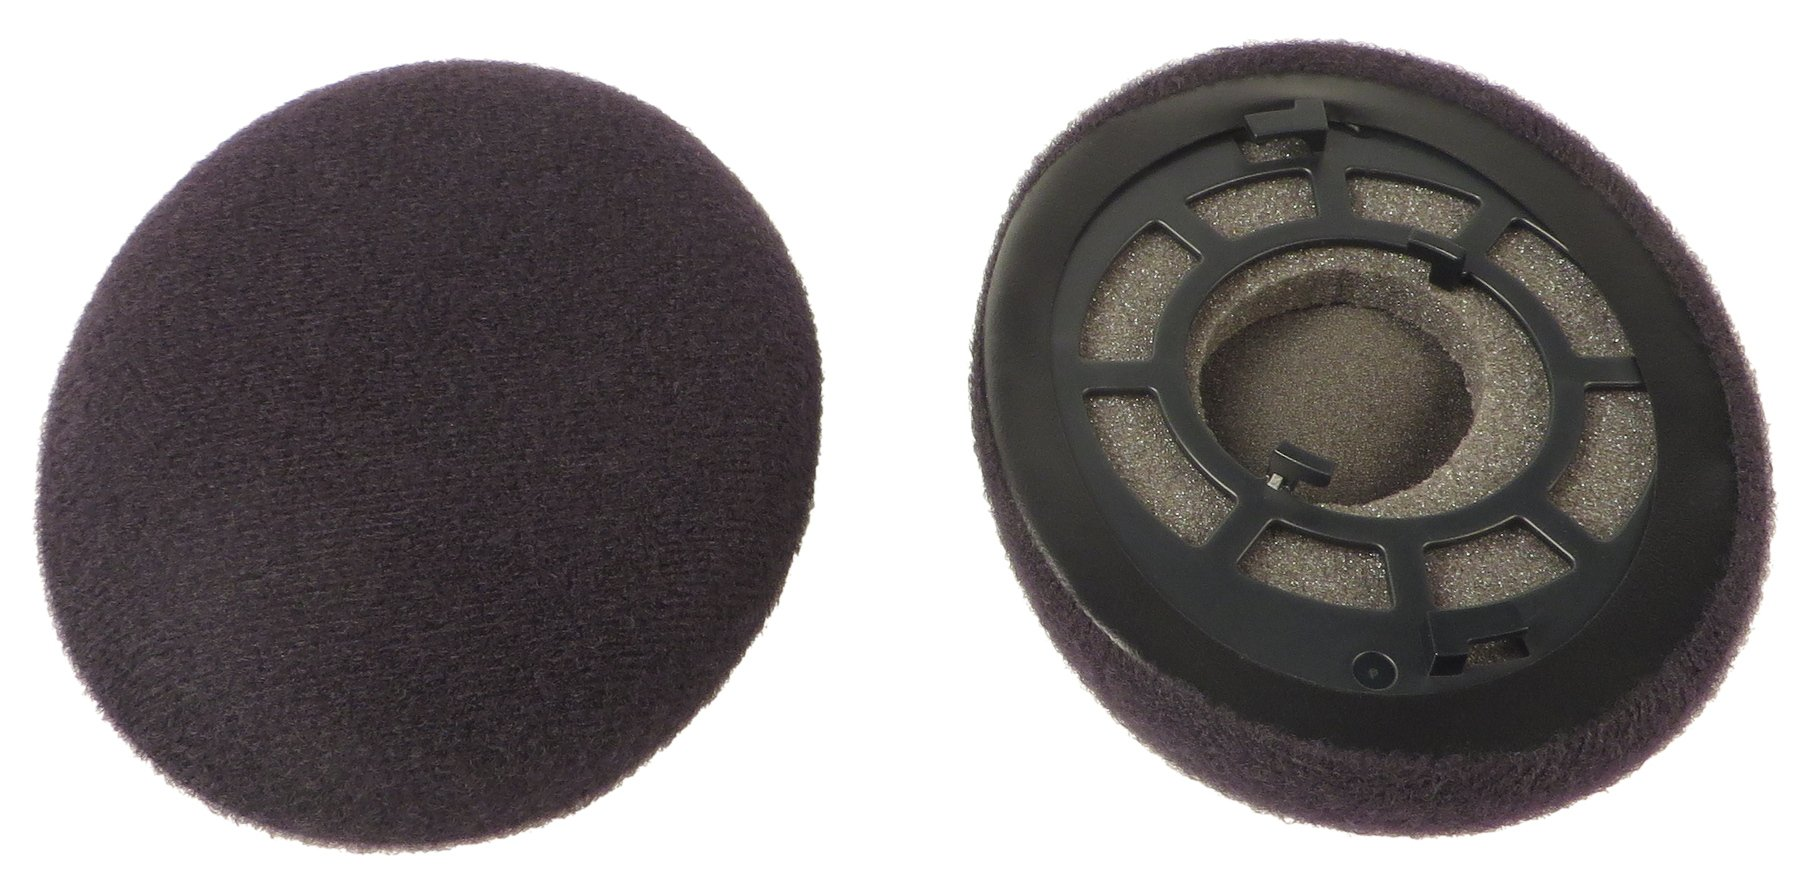 Earpds for RS 110, HDR 120, HDR 110 (Pair)